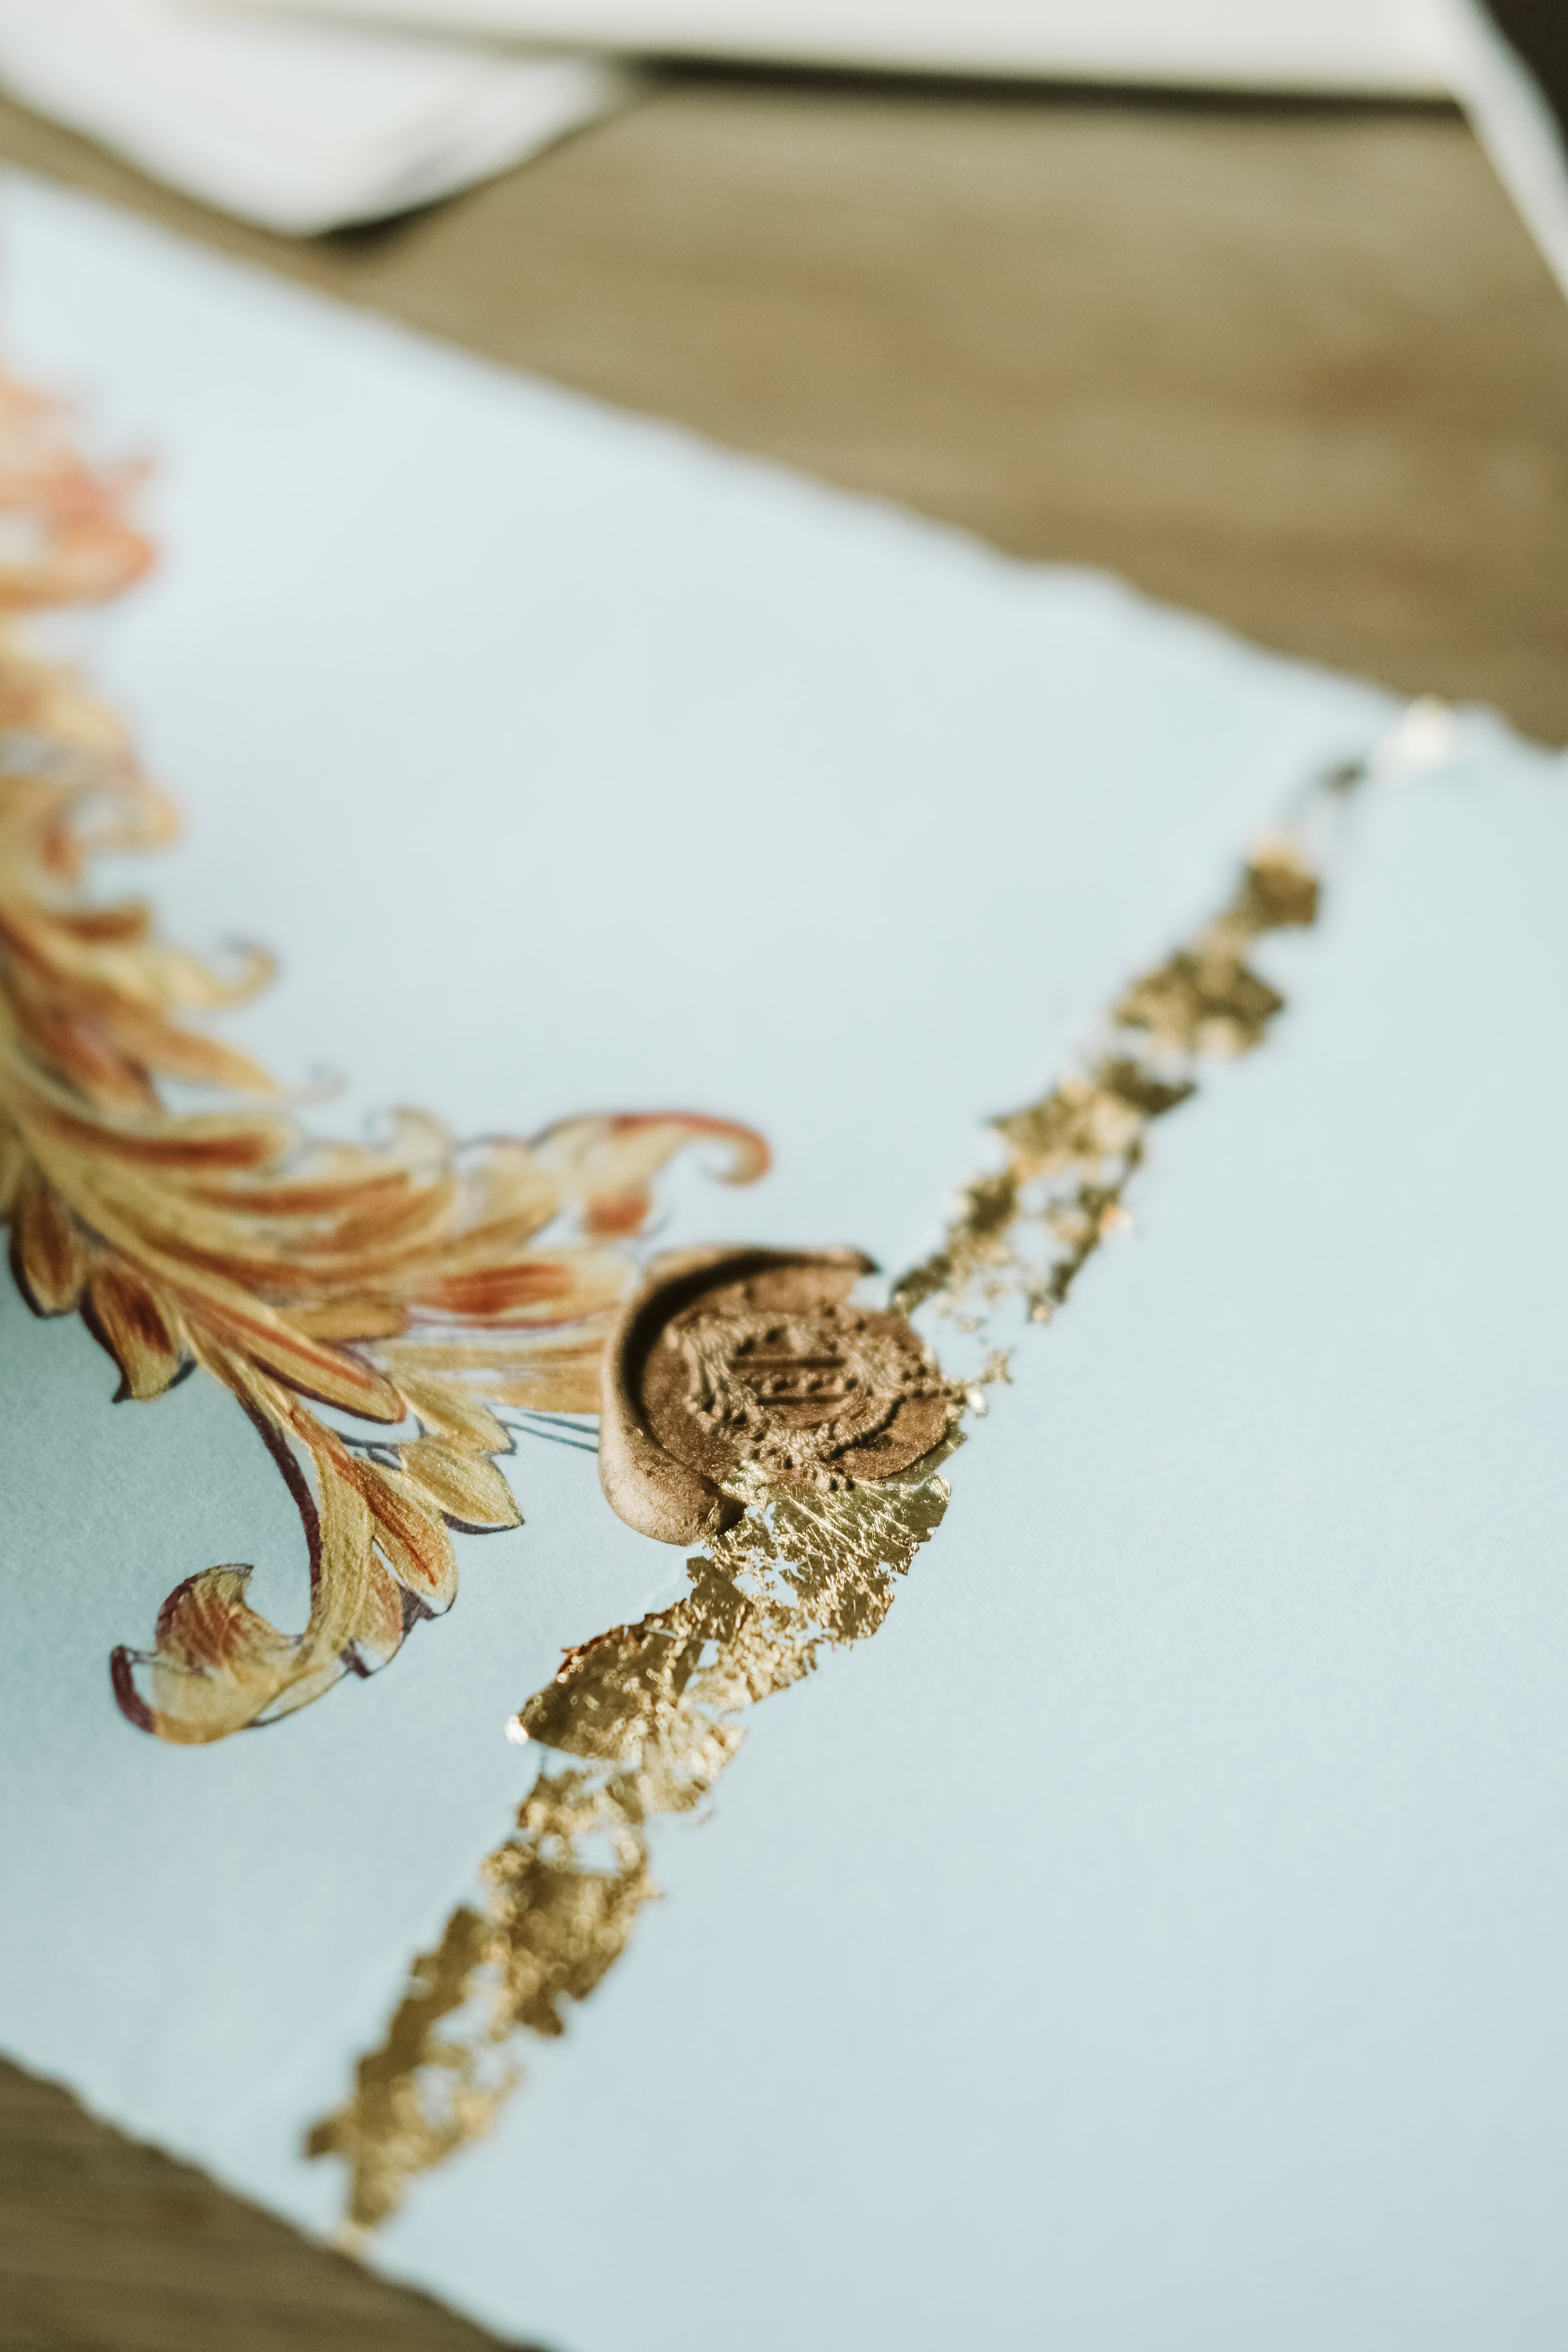 Luxury hand painted wedding invitations showing a blue envelope with gold design